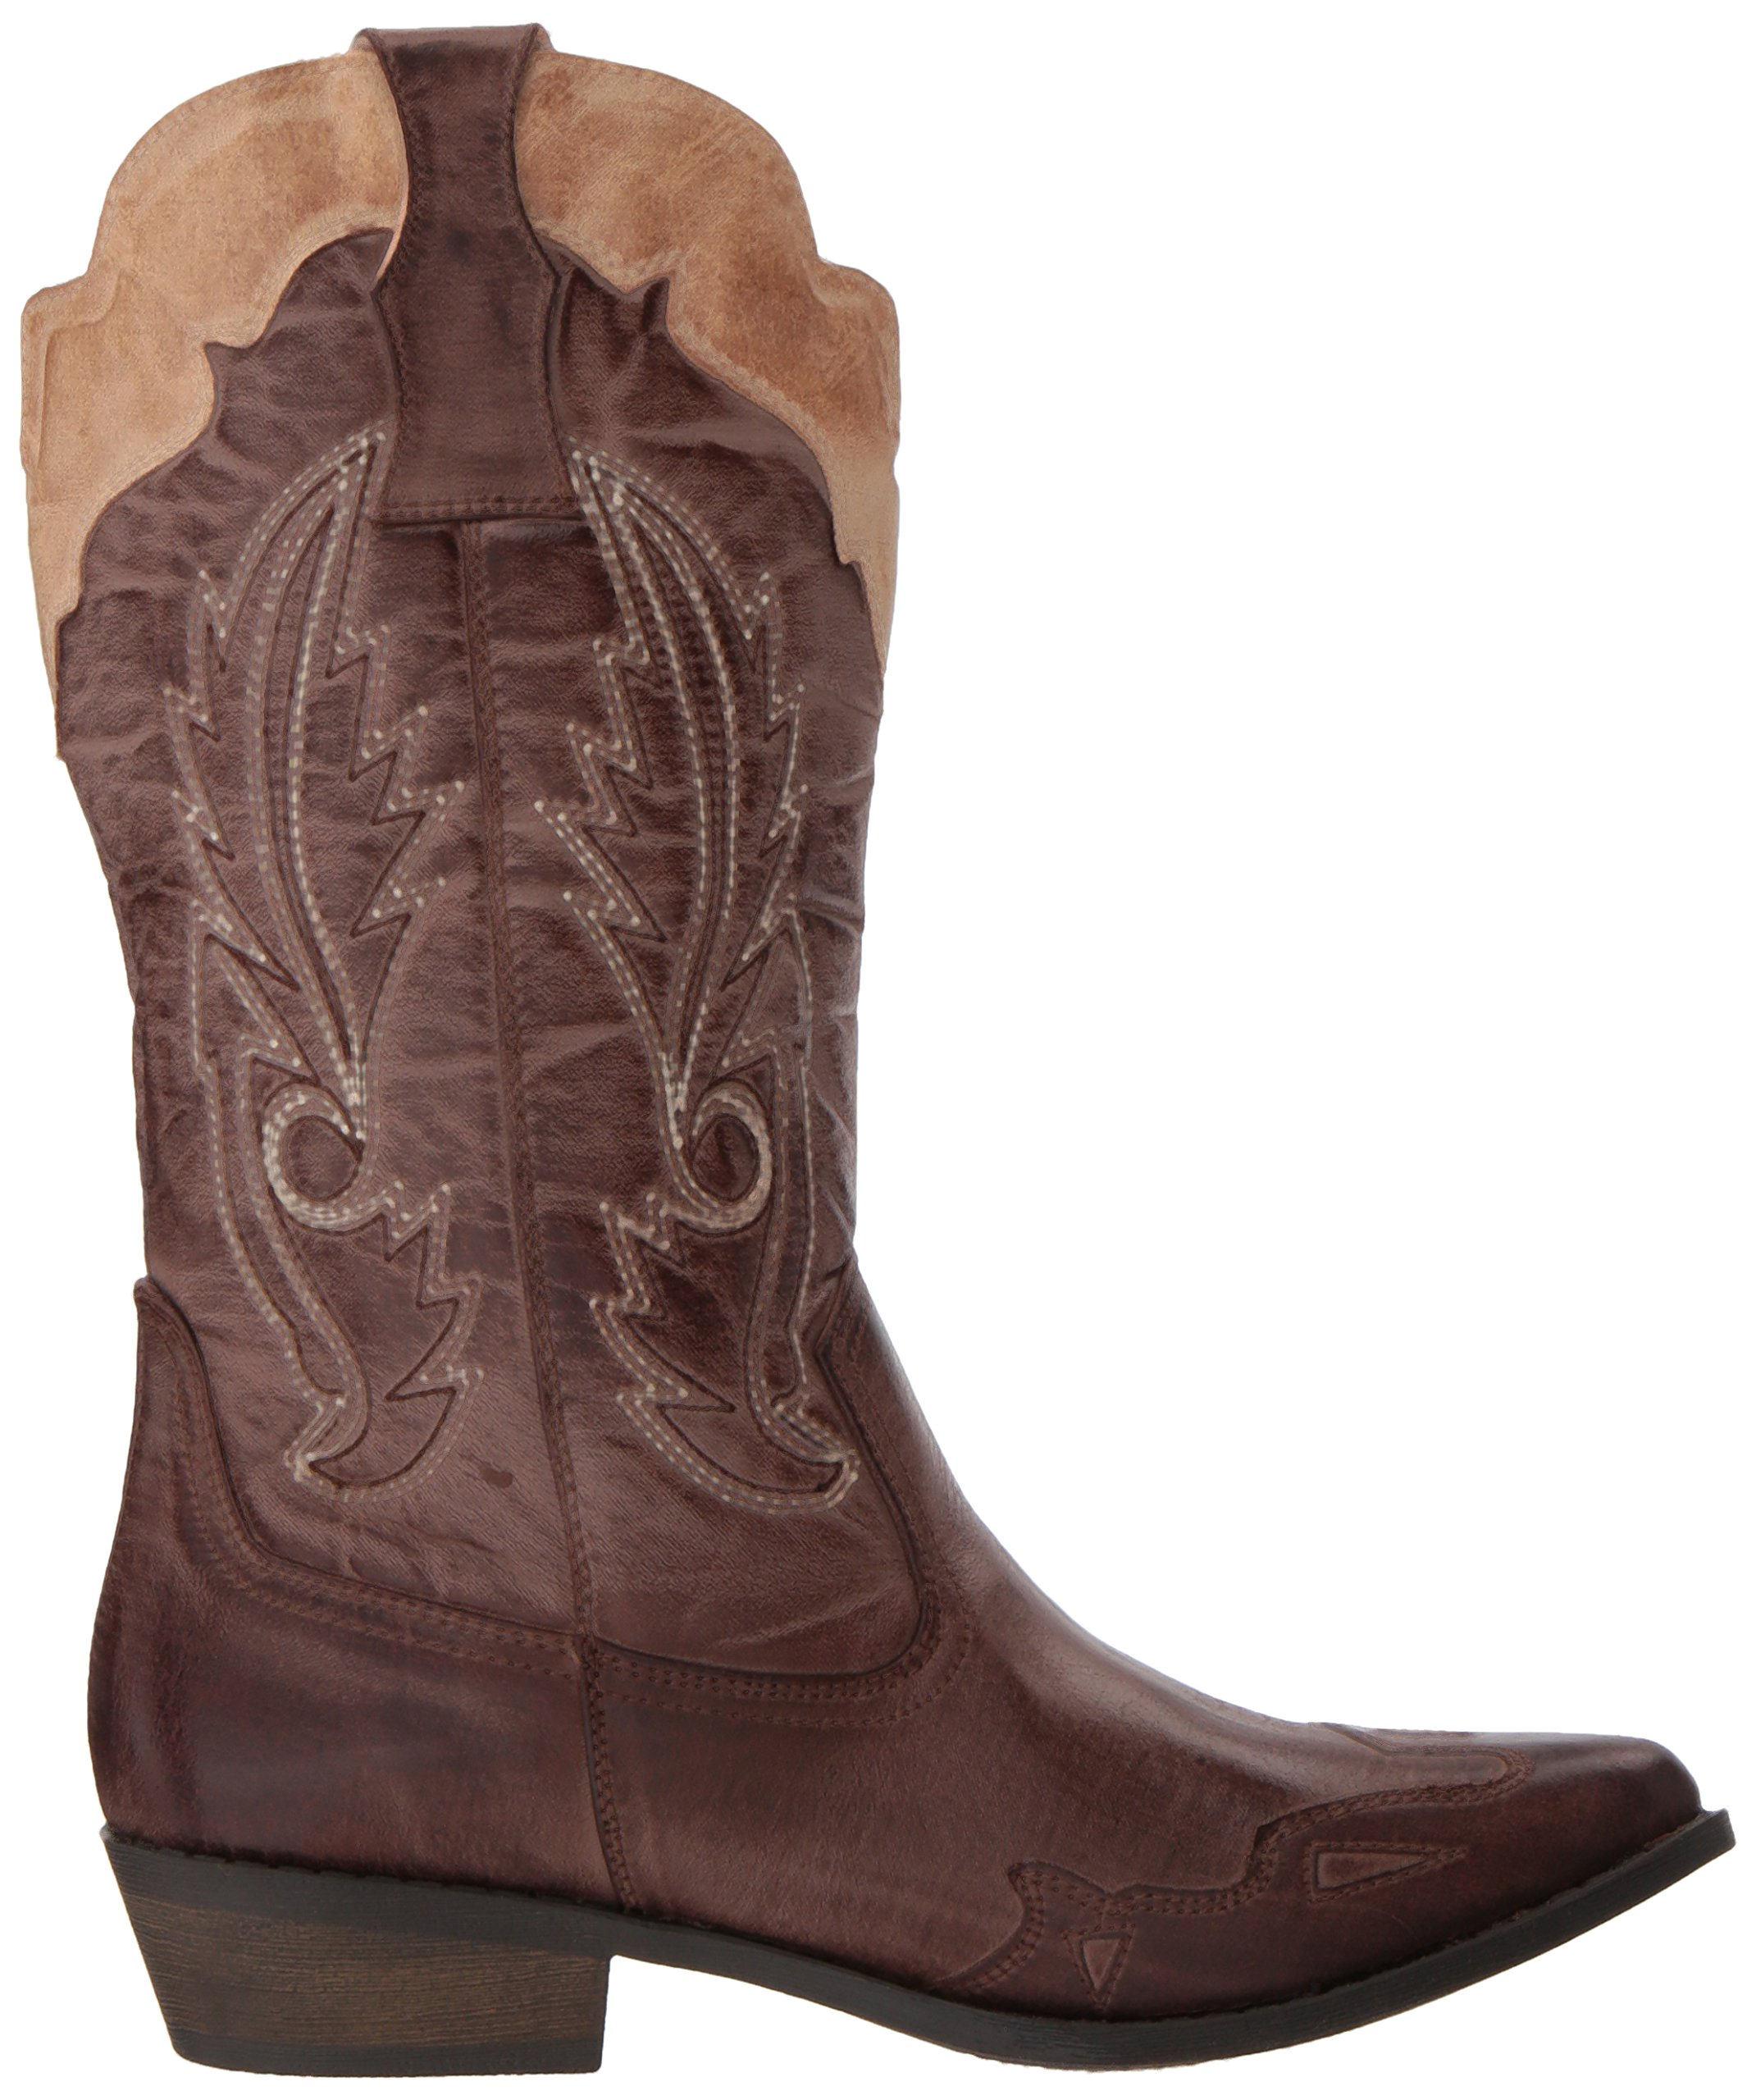 Coconuts by Matisse Women's Cimmaron Boot,Choco/Beige,10 M US by Coconuts by Matisse (Image #7)